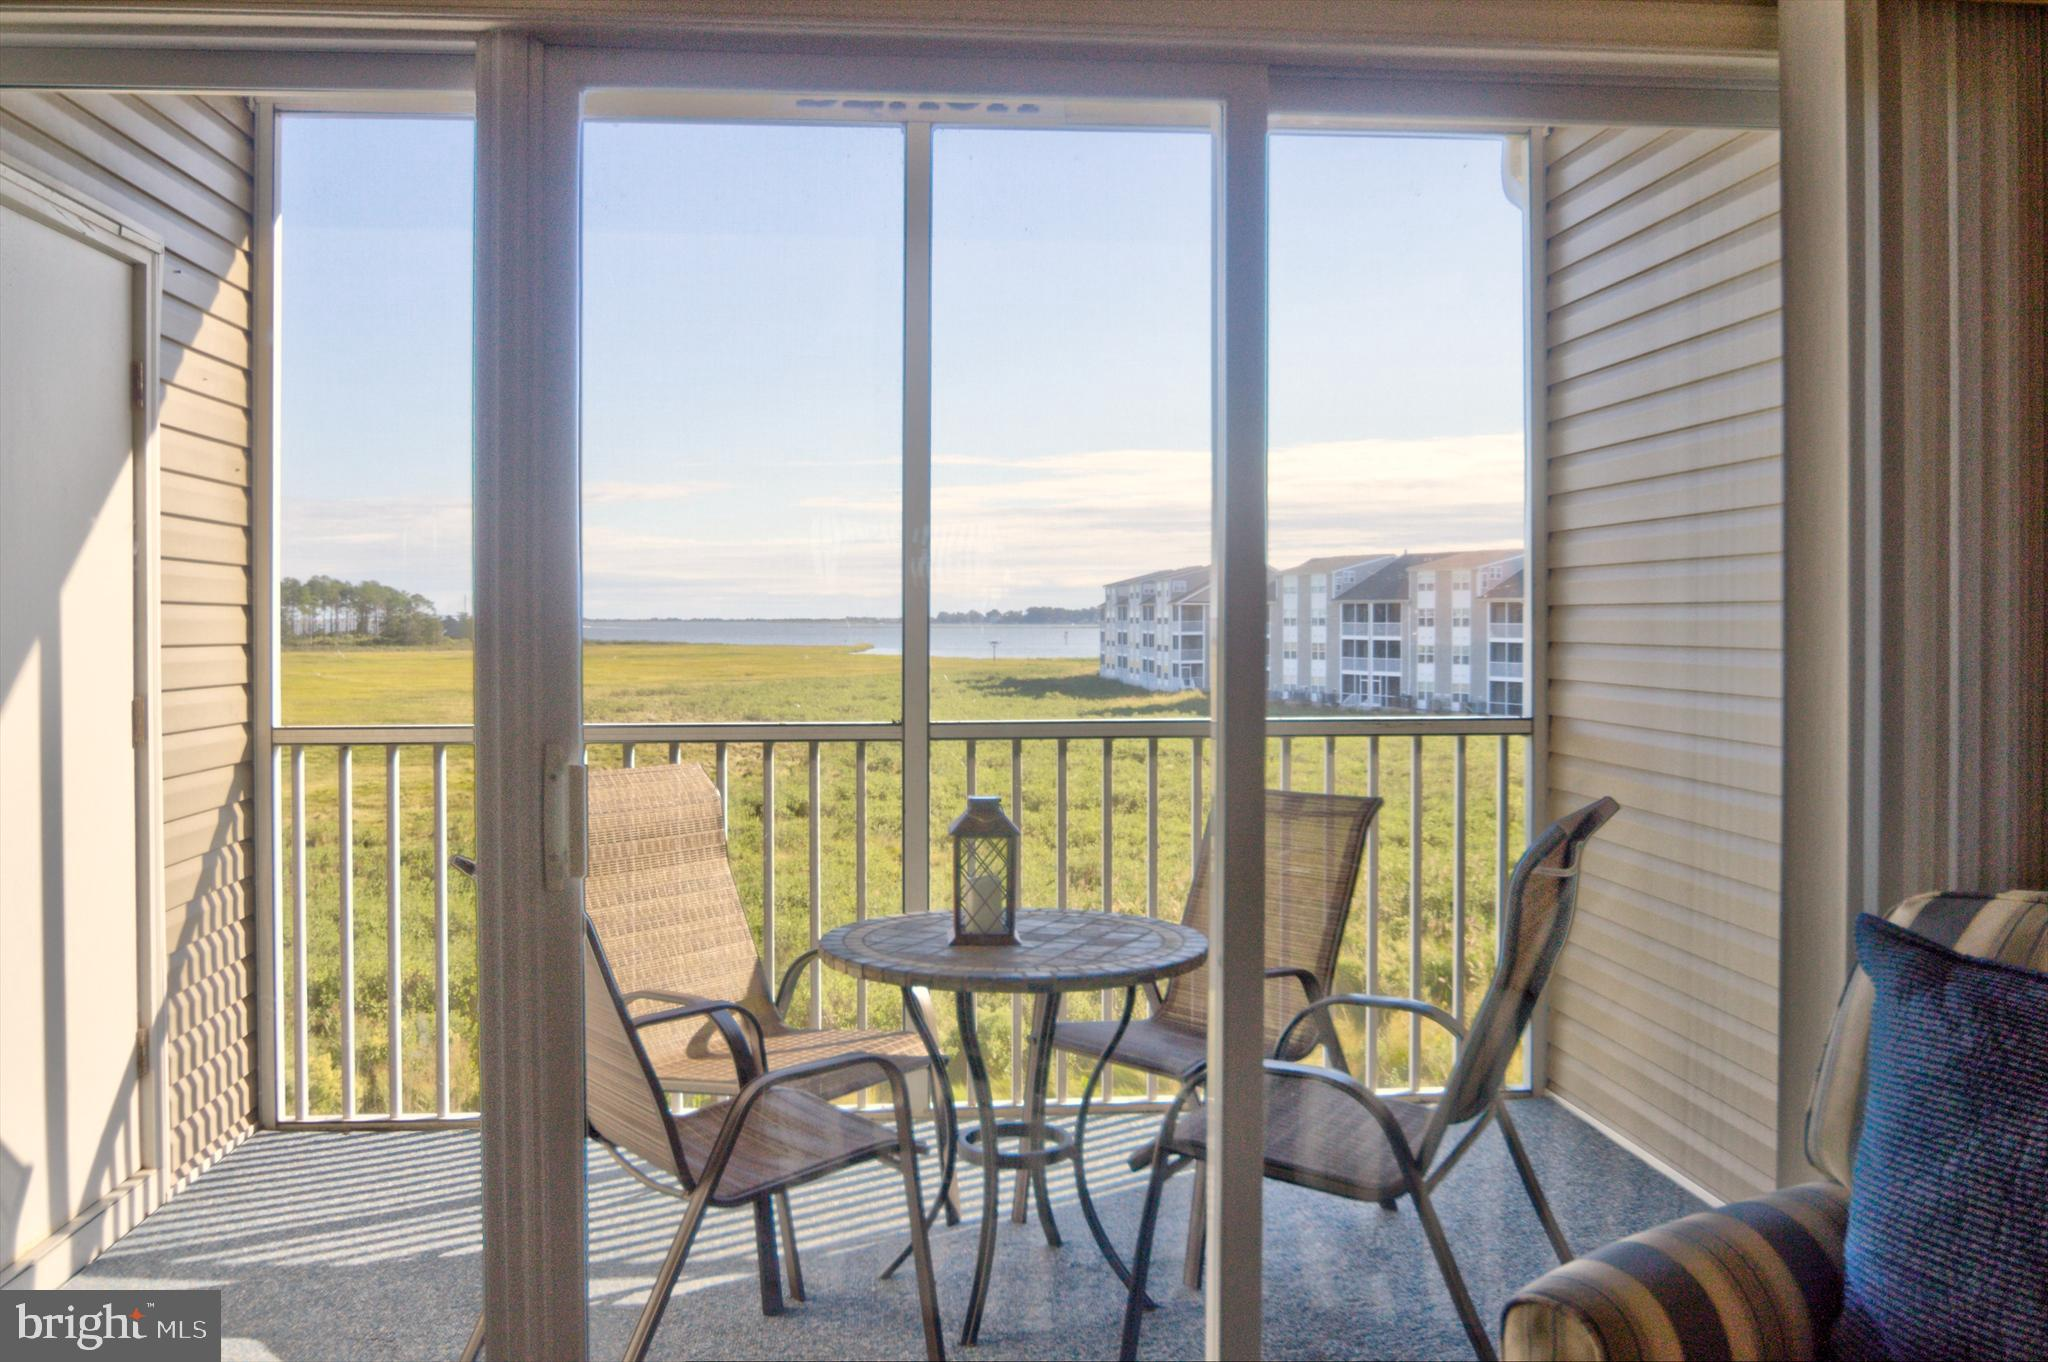 The best views of Indian River Bay! Just 15 minutes to Bethany Beach by car, this fully furnished 3r